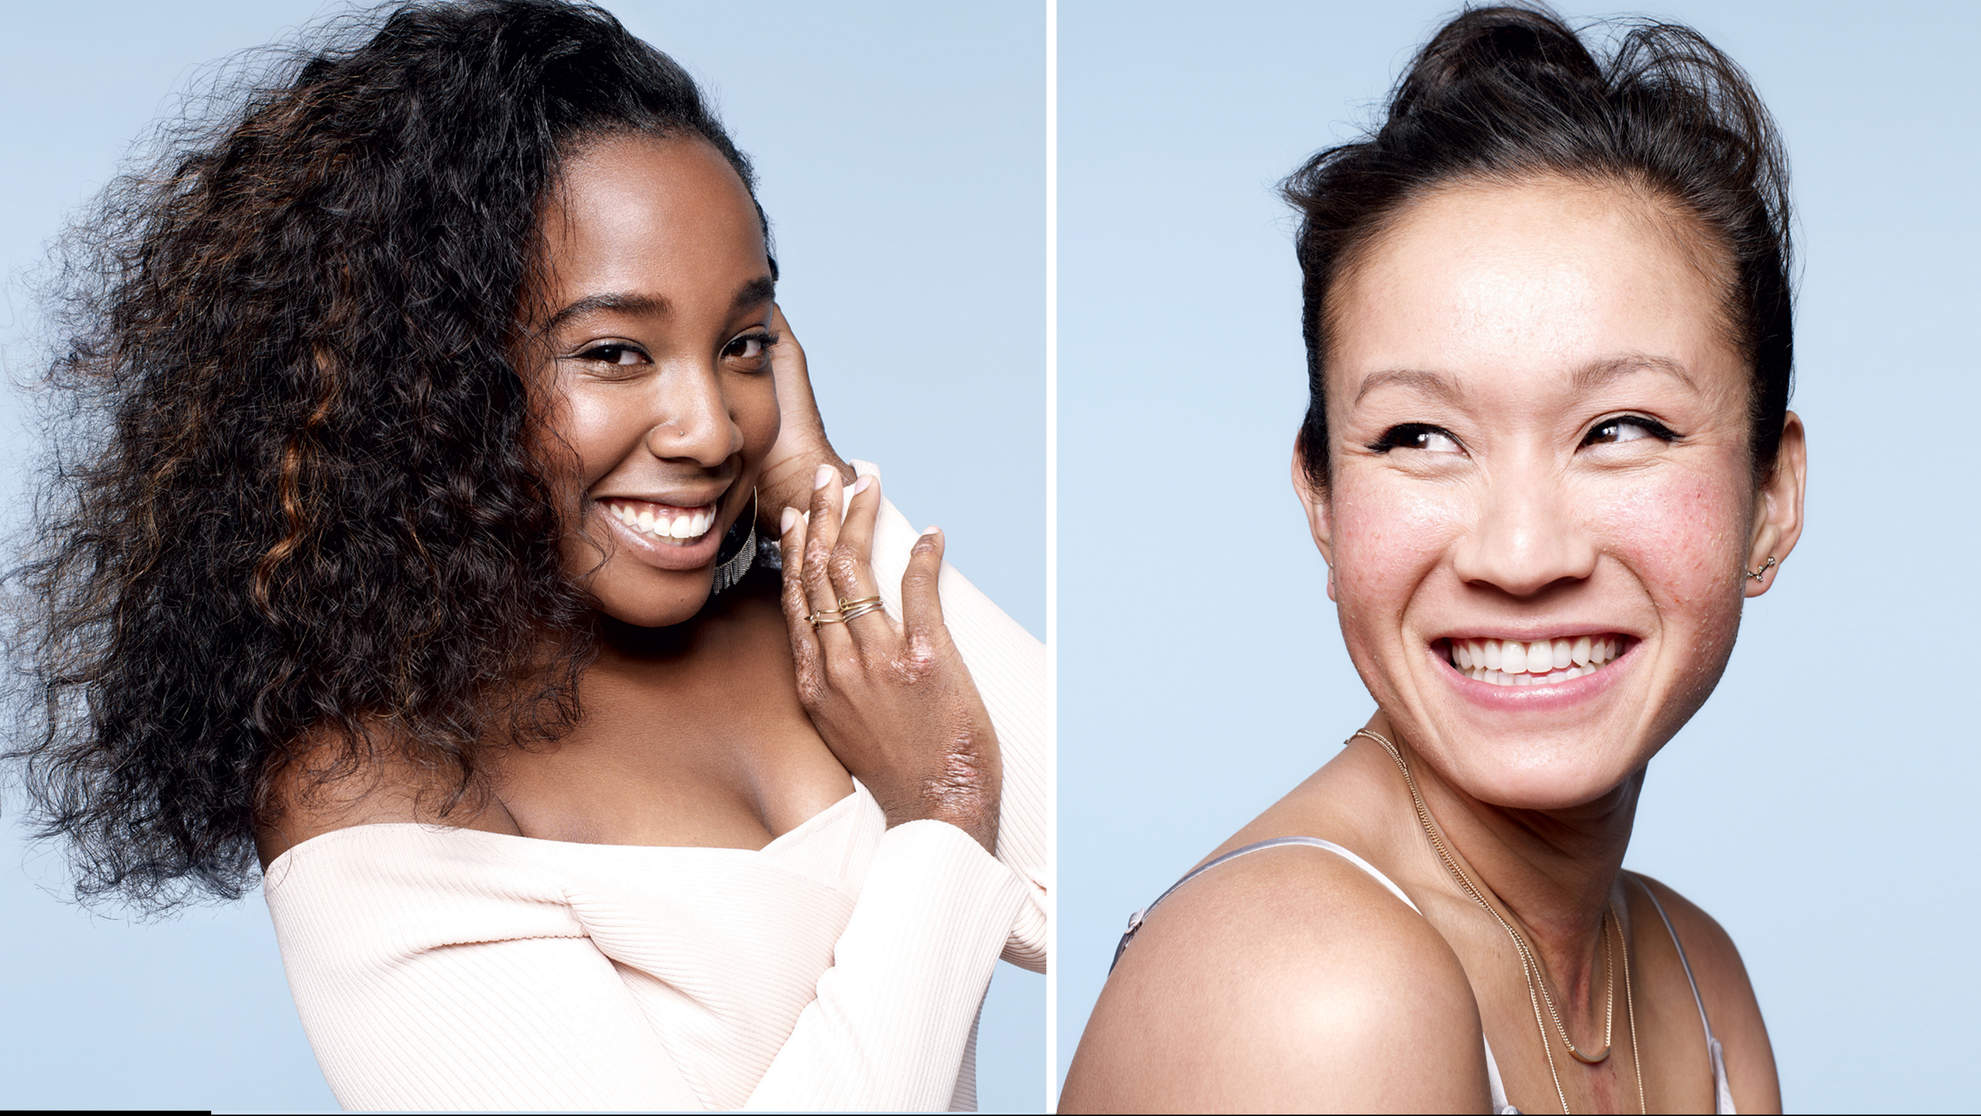 Dove's New 'Make Peace With Dry Skin' Campaign Features Real Women With Eczema, Psoriasis, and Other Skin Conditions